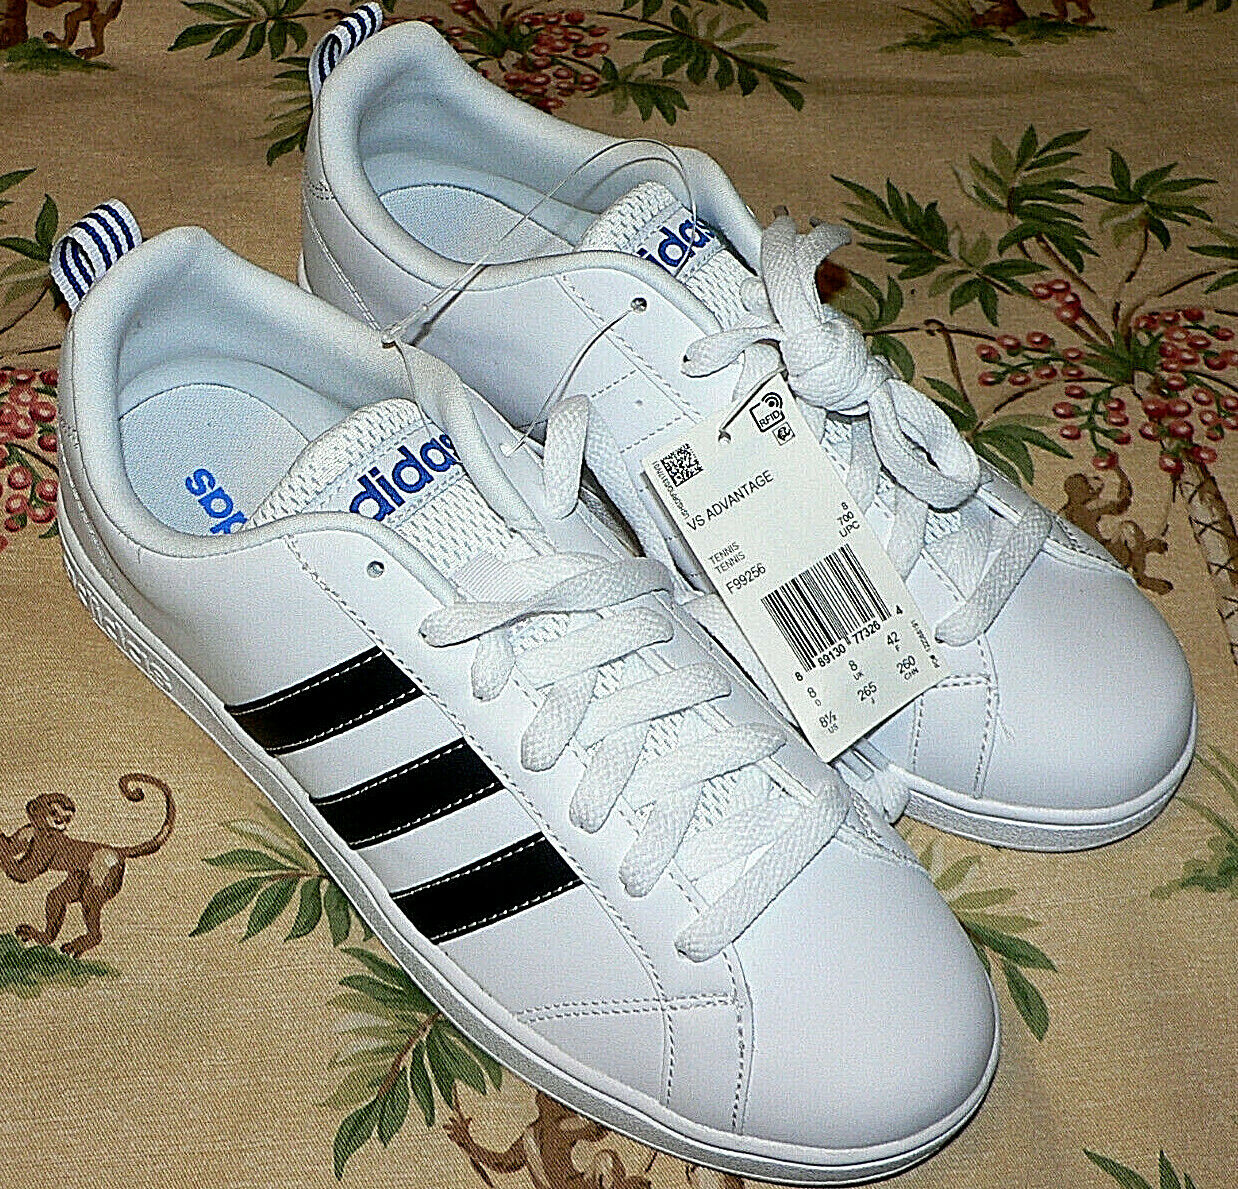 38b91fb2f086b Adidas VS Advantage Men s Size 8 1 2 Casual Tennis shoes Sneakers F99256  White